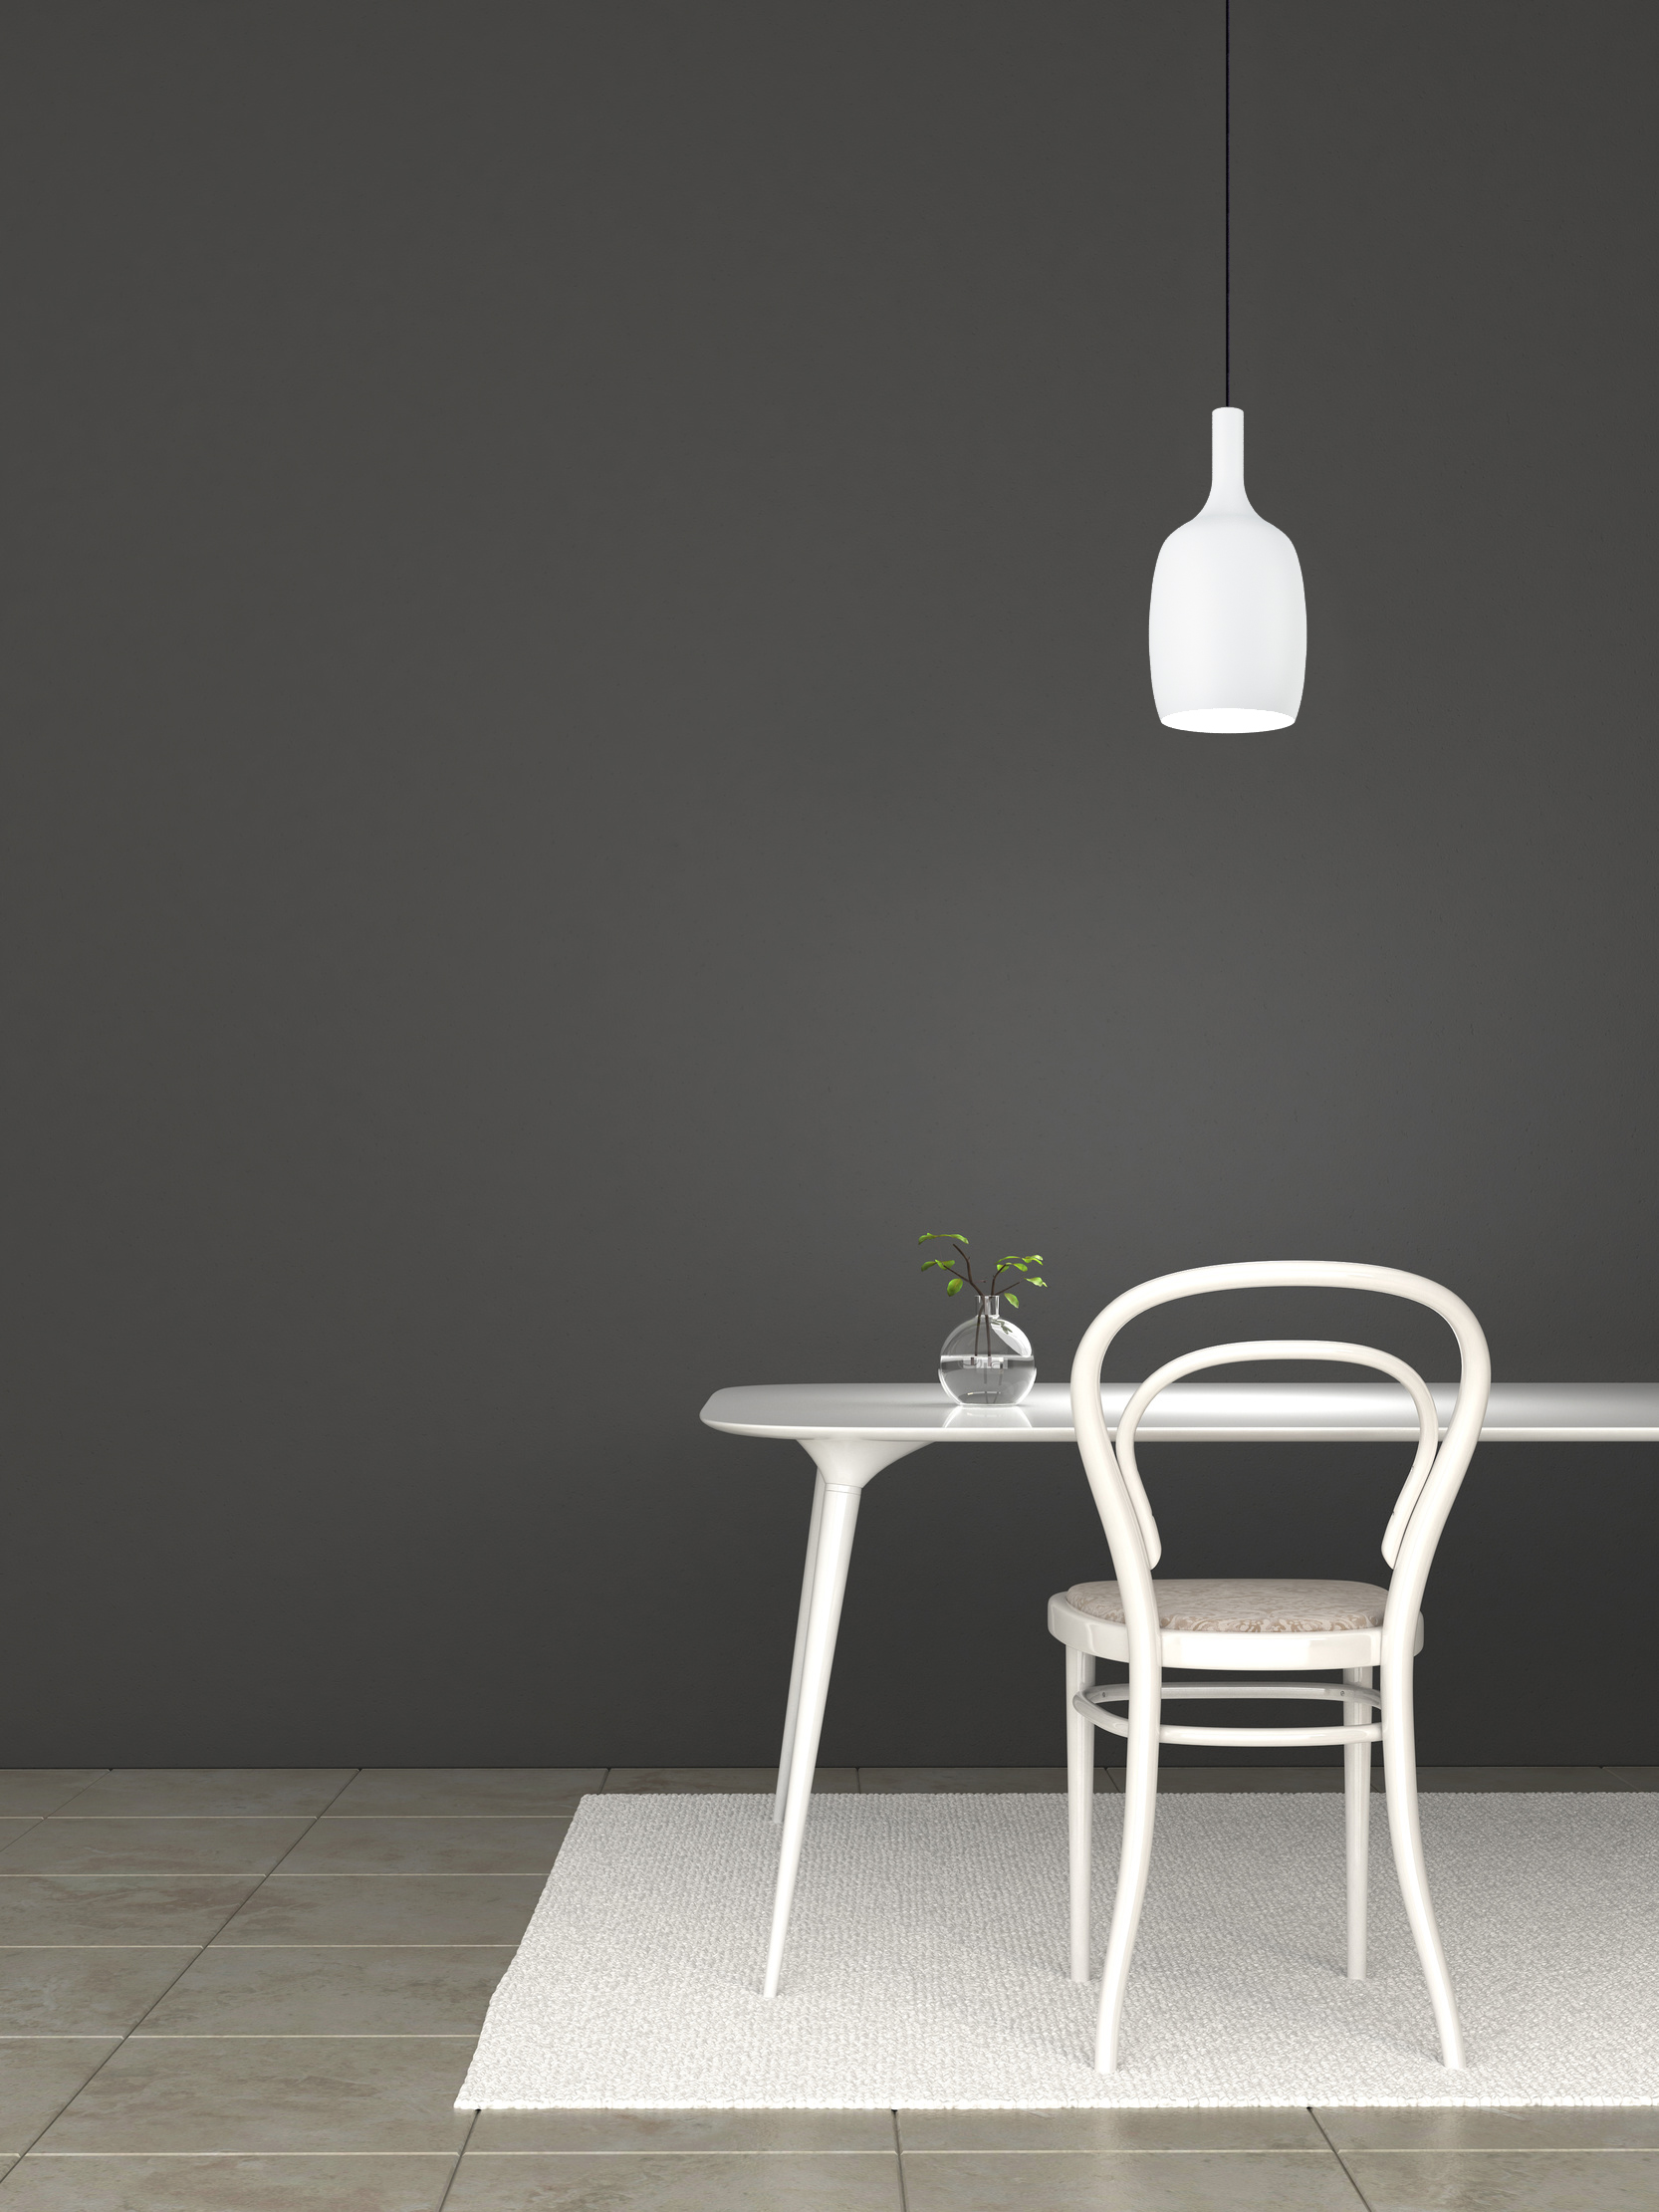 Empty dark room with table and chair in composition